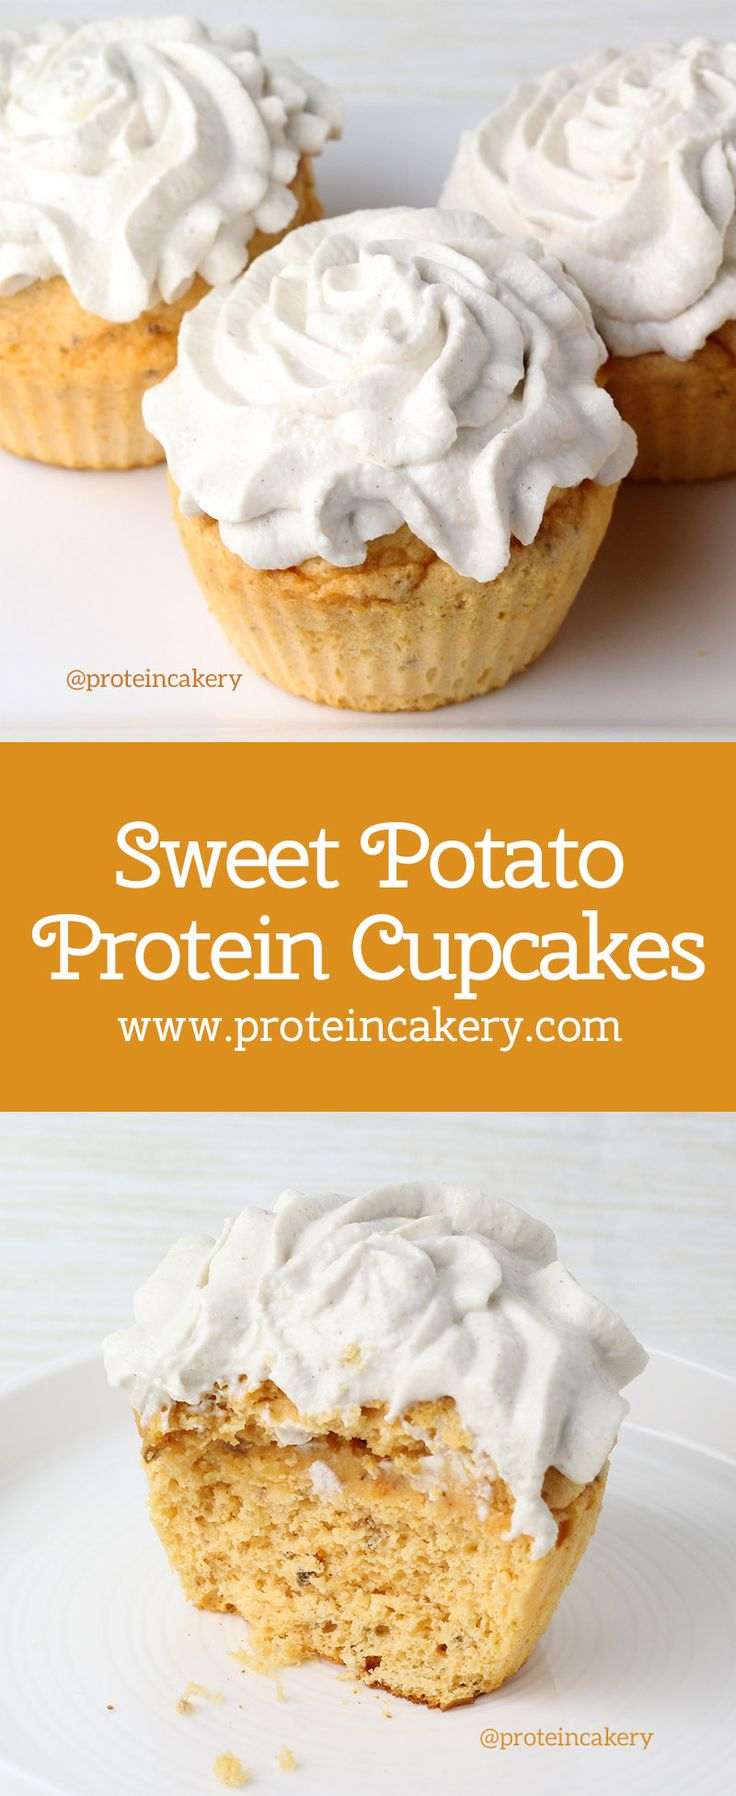 Sweet Potato Protein Cupcakes - gluten free, low carb - Andréa's Protein Cakery